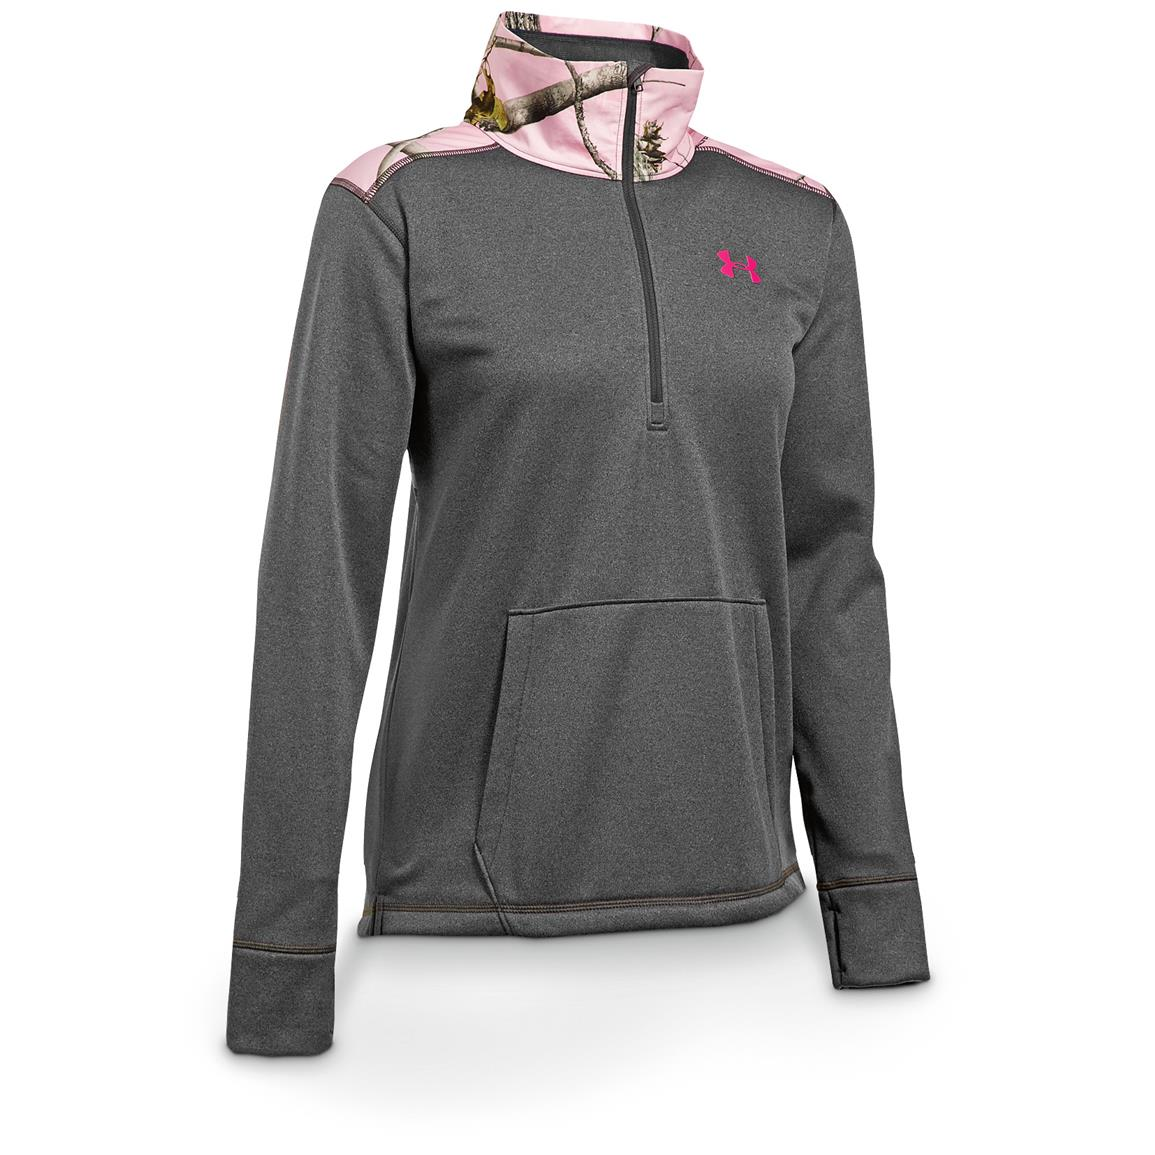 Under Armour Women's Caliber ColdGear 1/2-Zip Sweatshirt, Carbon Heather / Tropic Pink